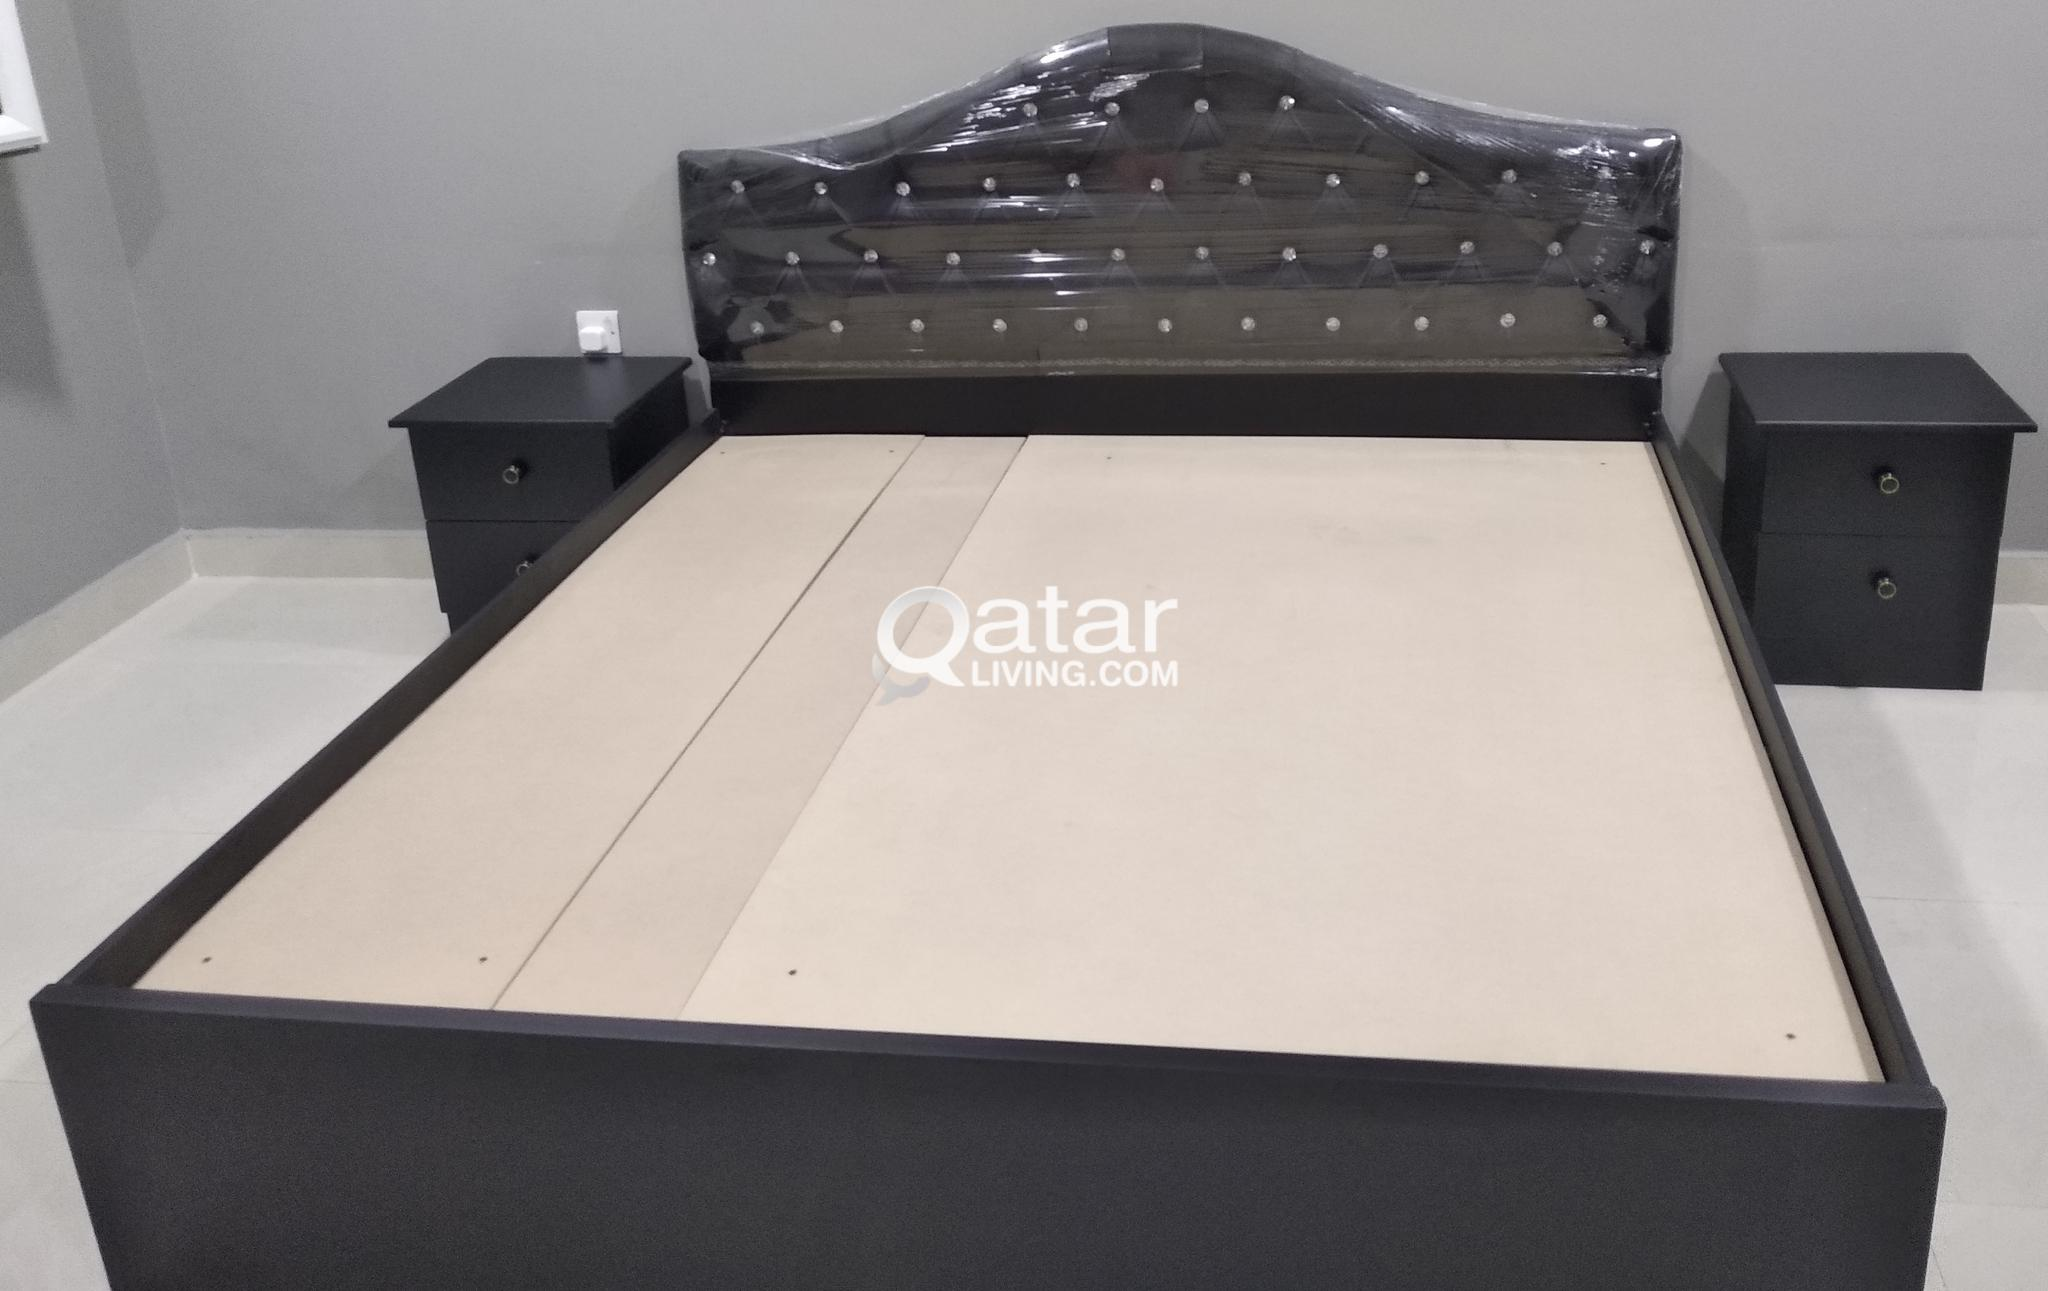 All brand new furniture and wholesale price